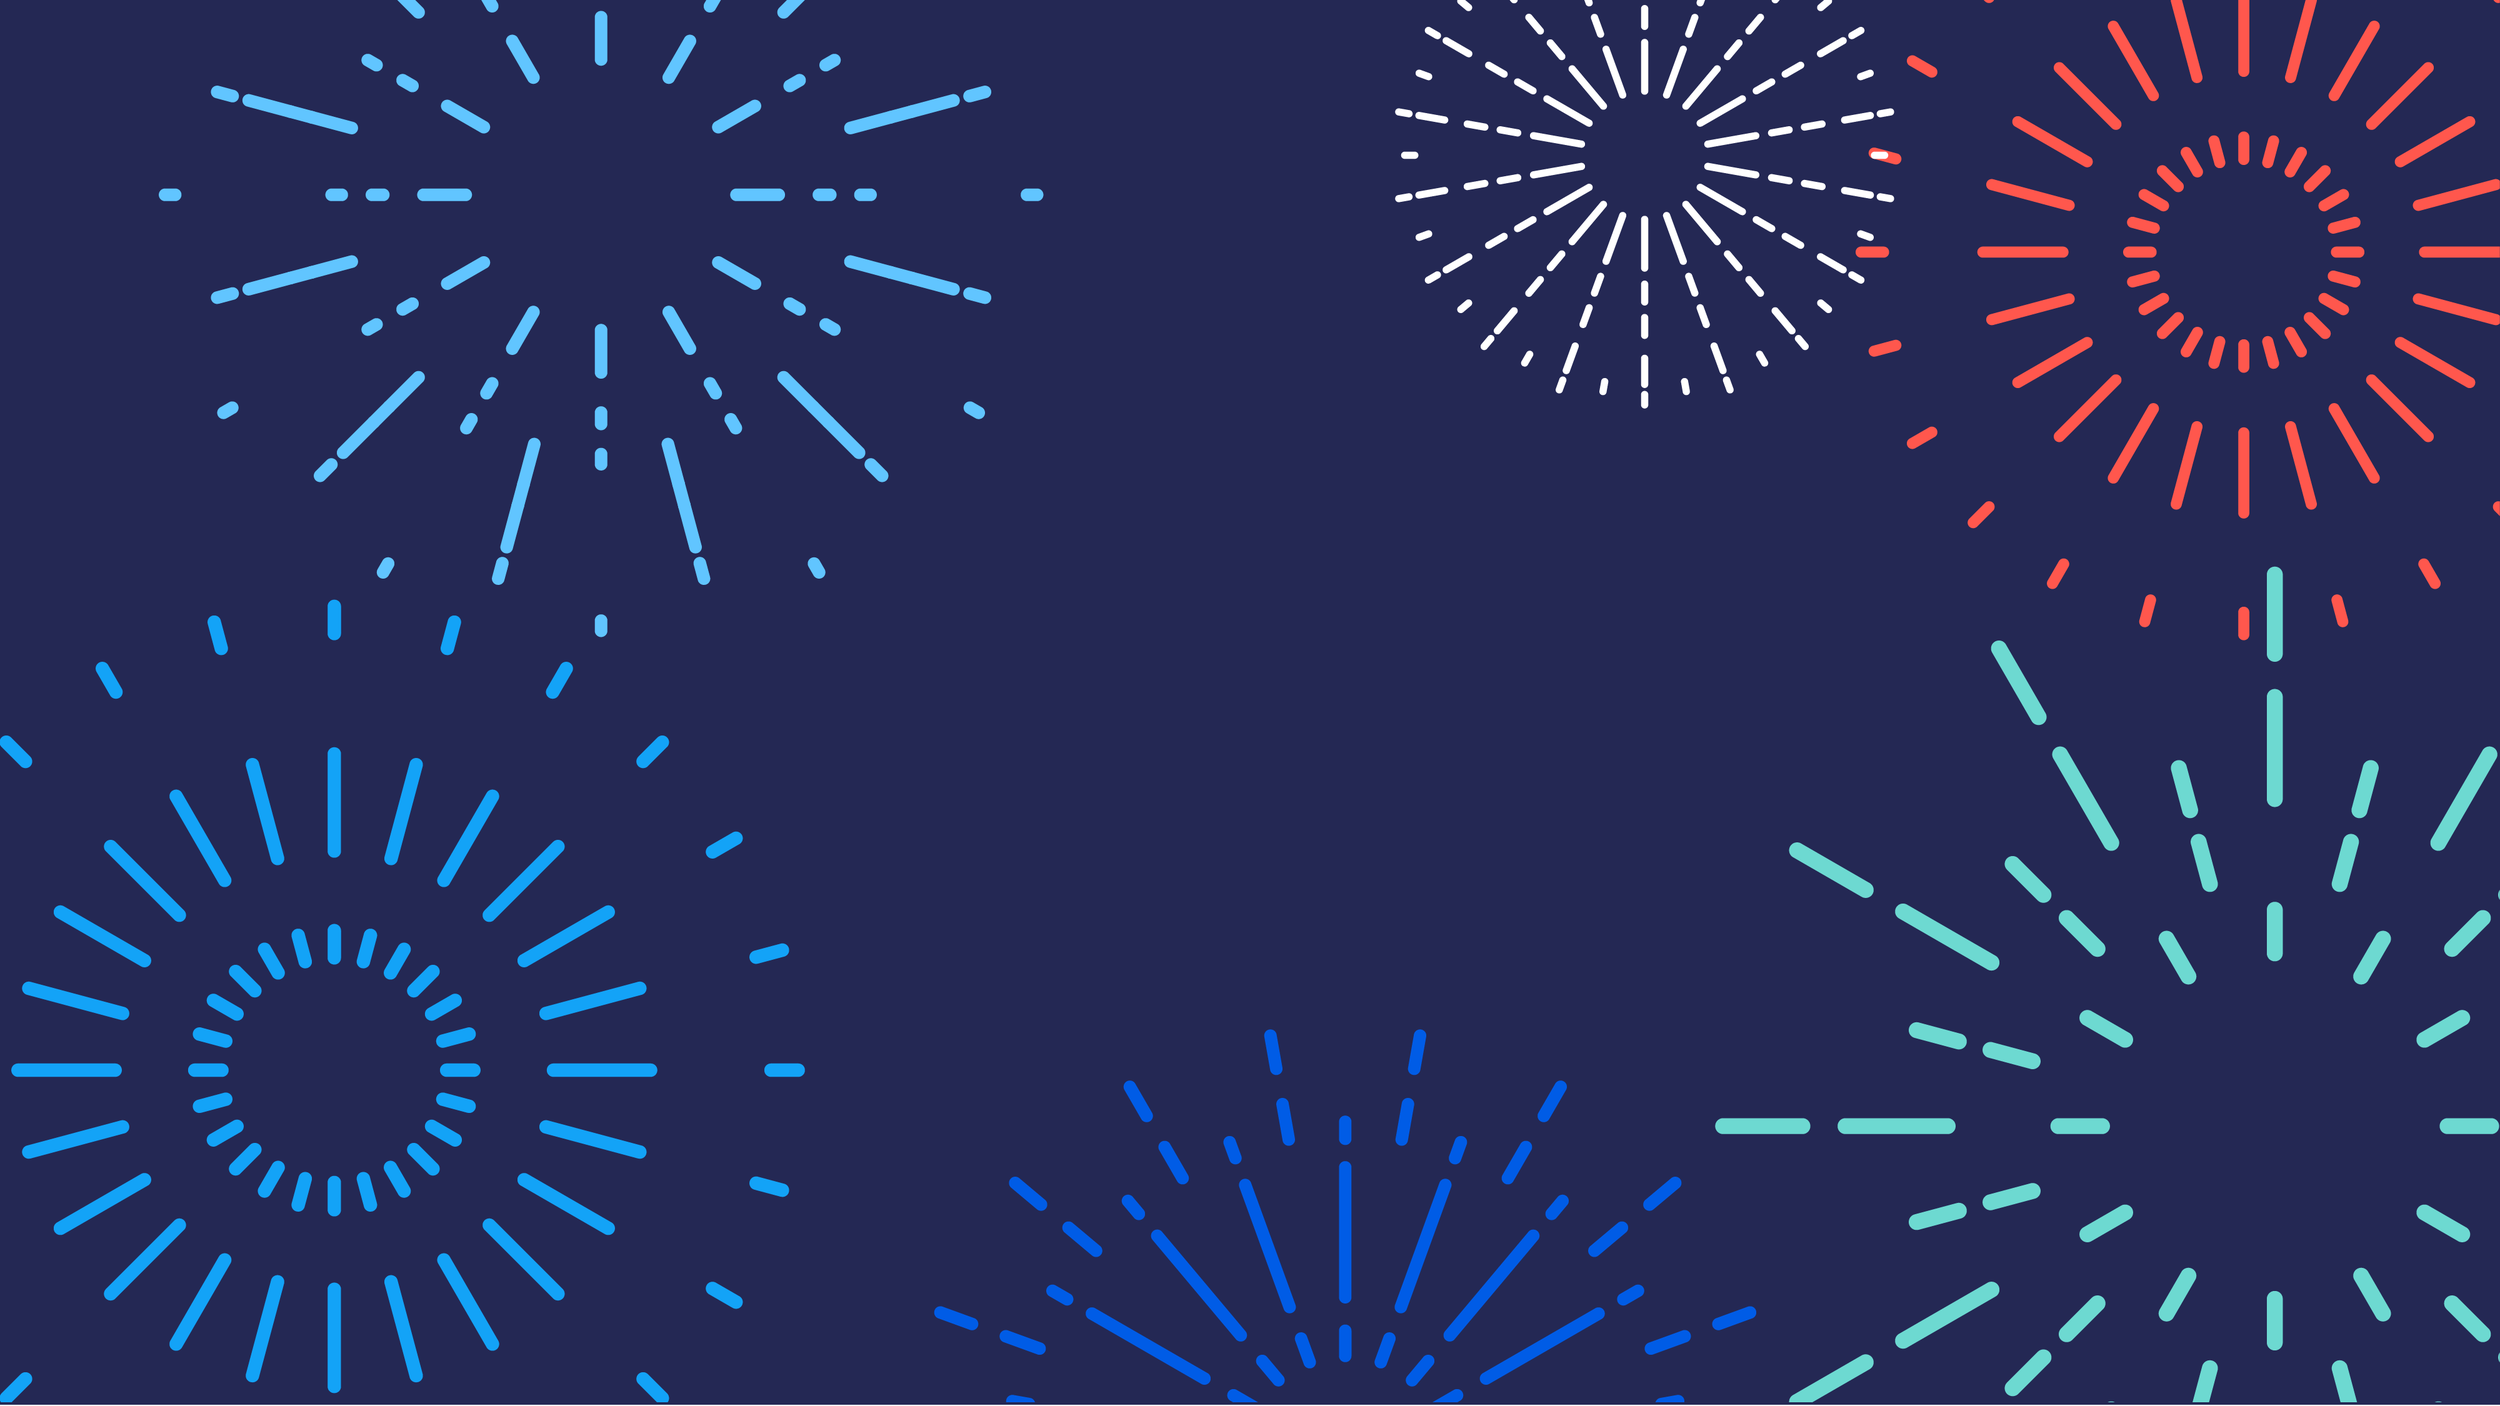 infor_holiday_card_121816_MD_Fireworks_2.png